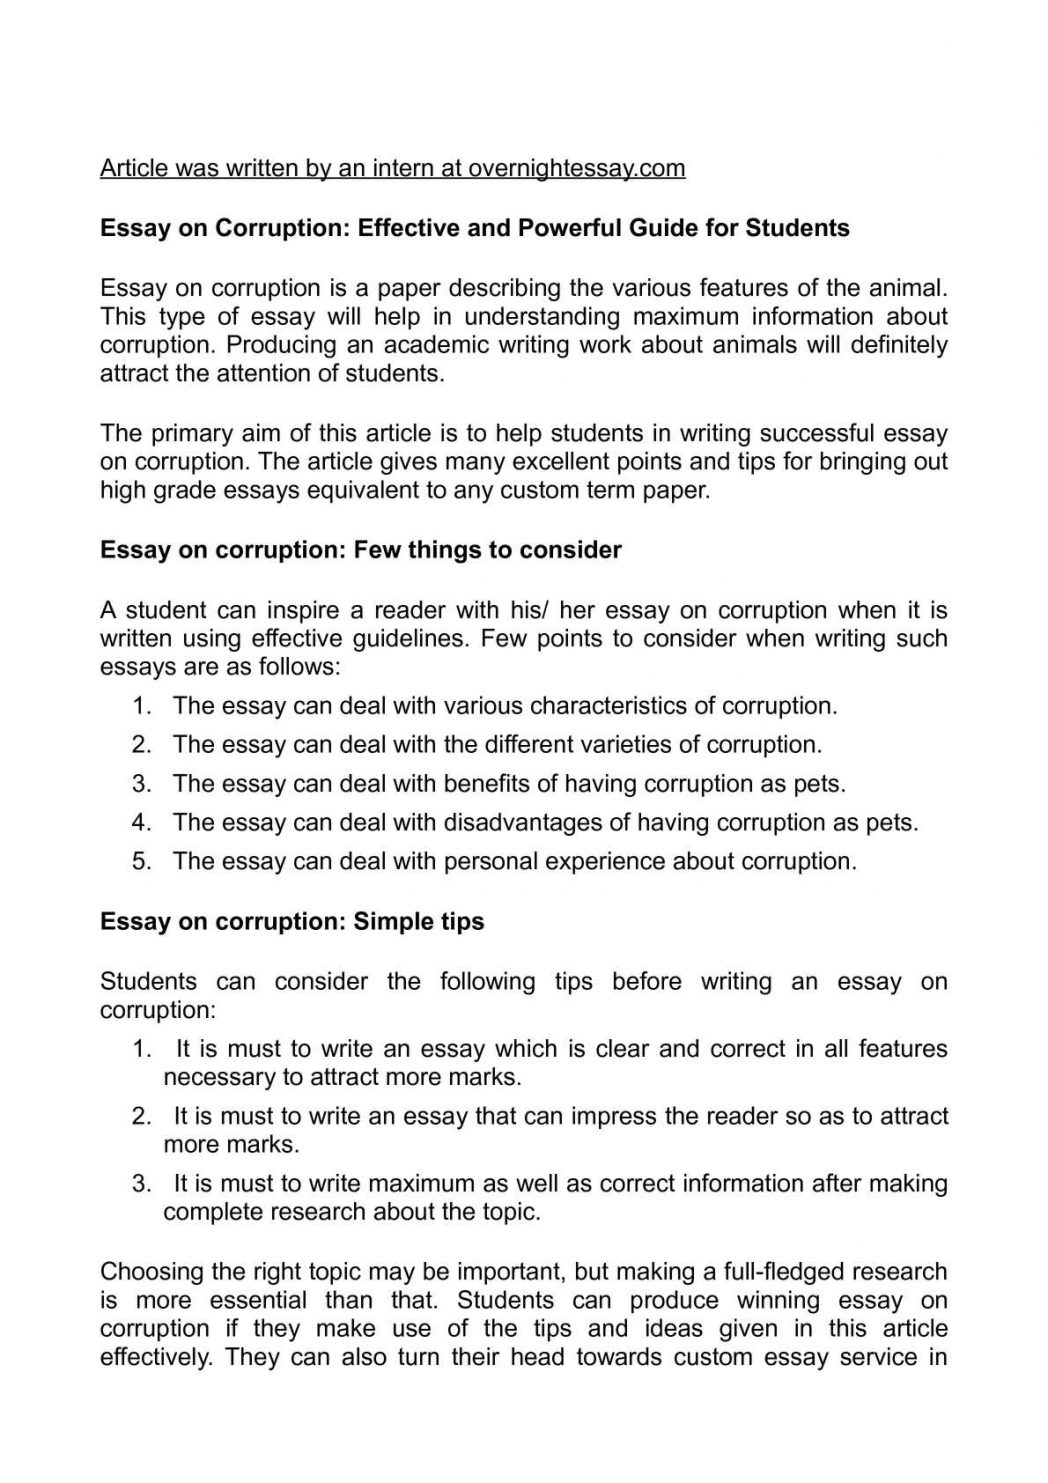 015 How To Write This I Believe Essay Easy Essays Calam Atilde Copy O On Corruption Effective Samples Good Topics Template 1048x1483 Fantastic A Things What Full